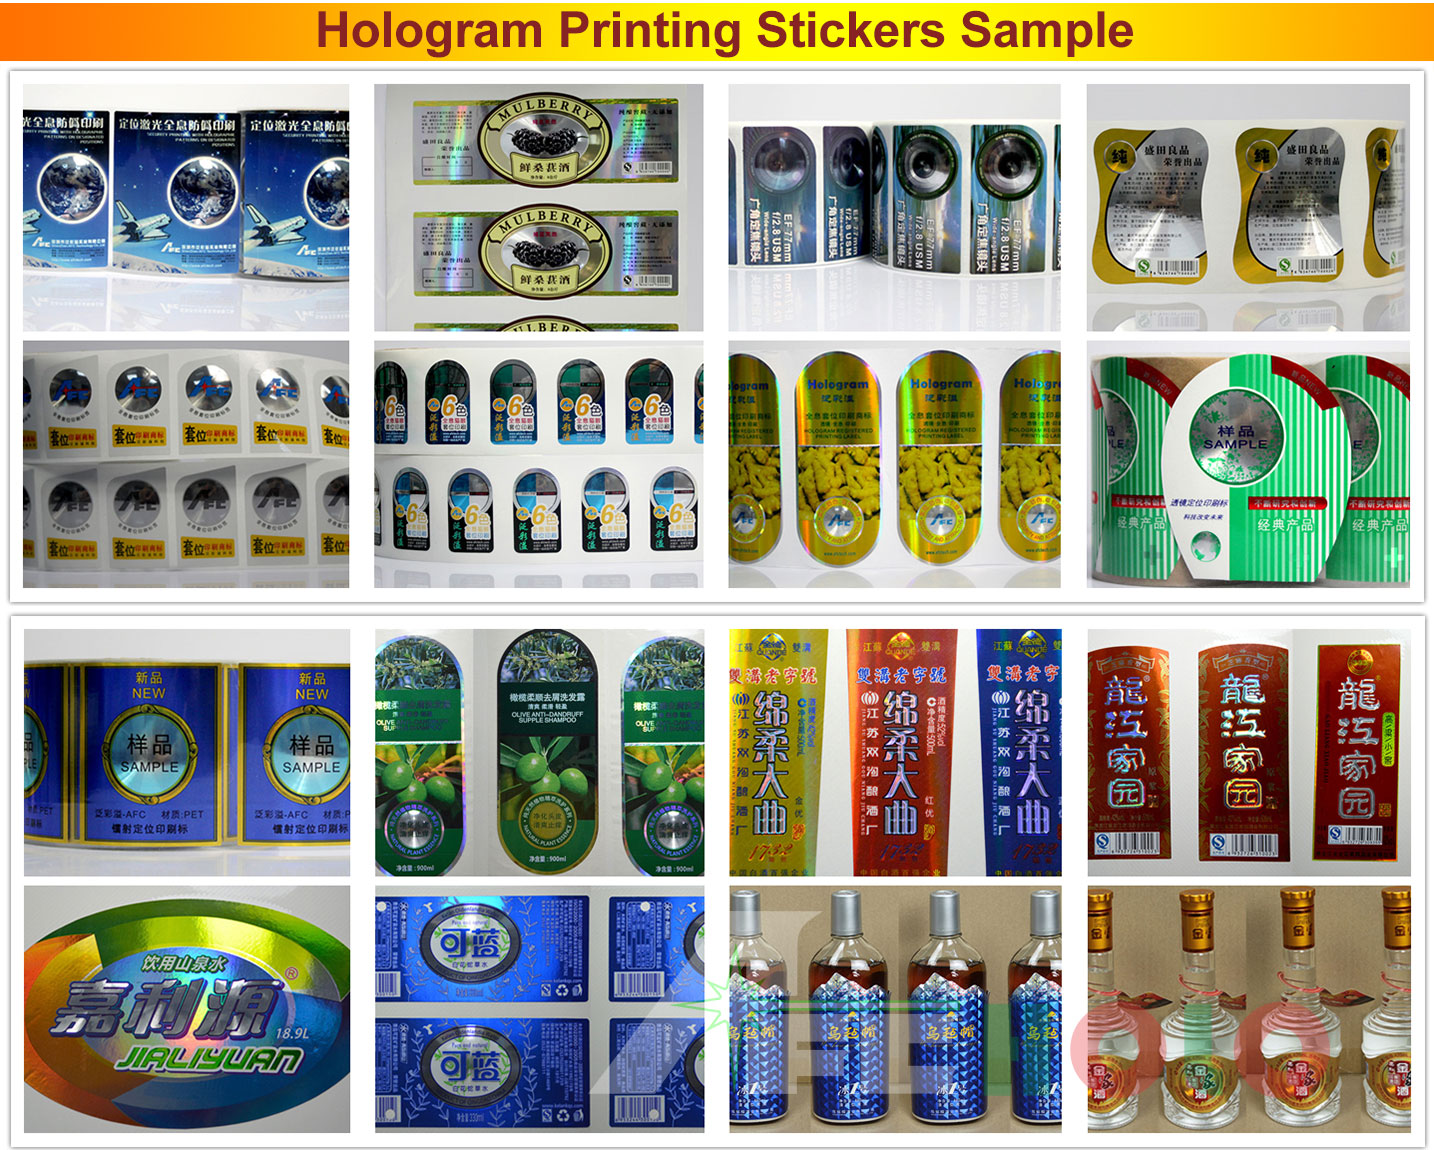 hologram printing stickers sample